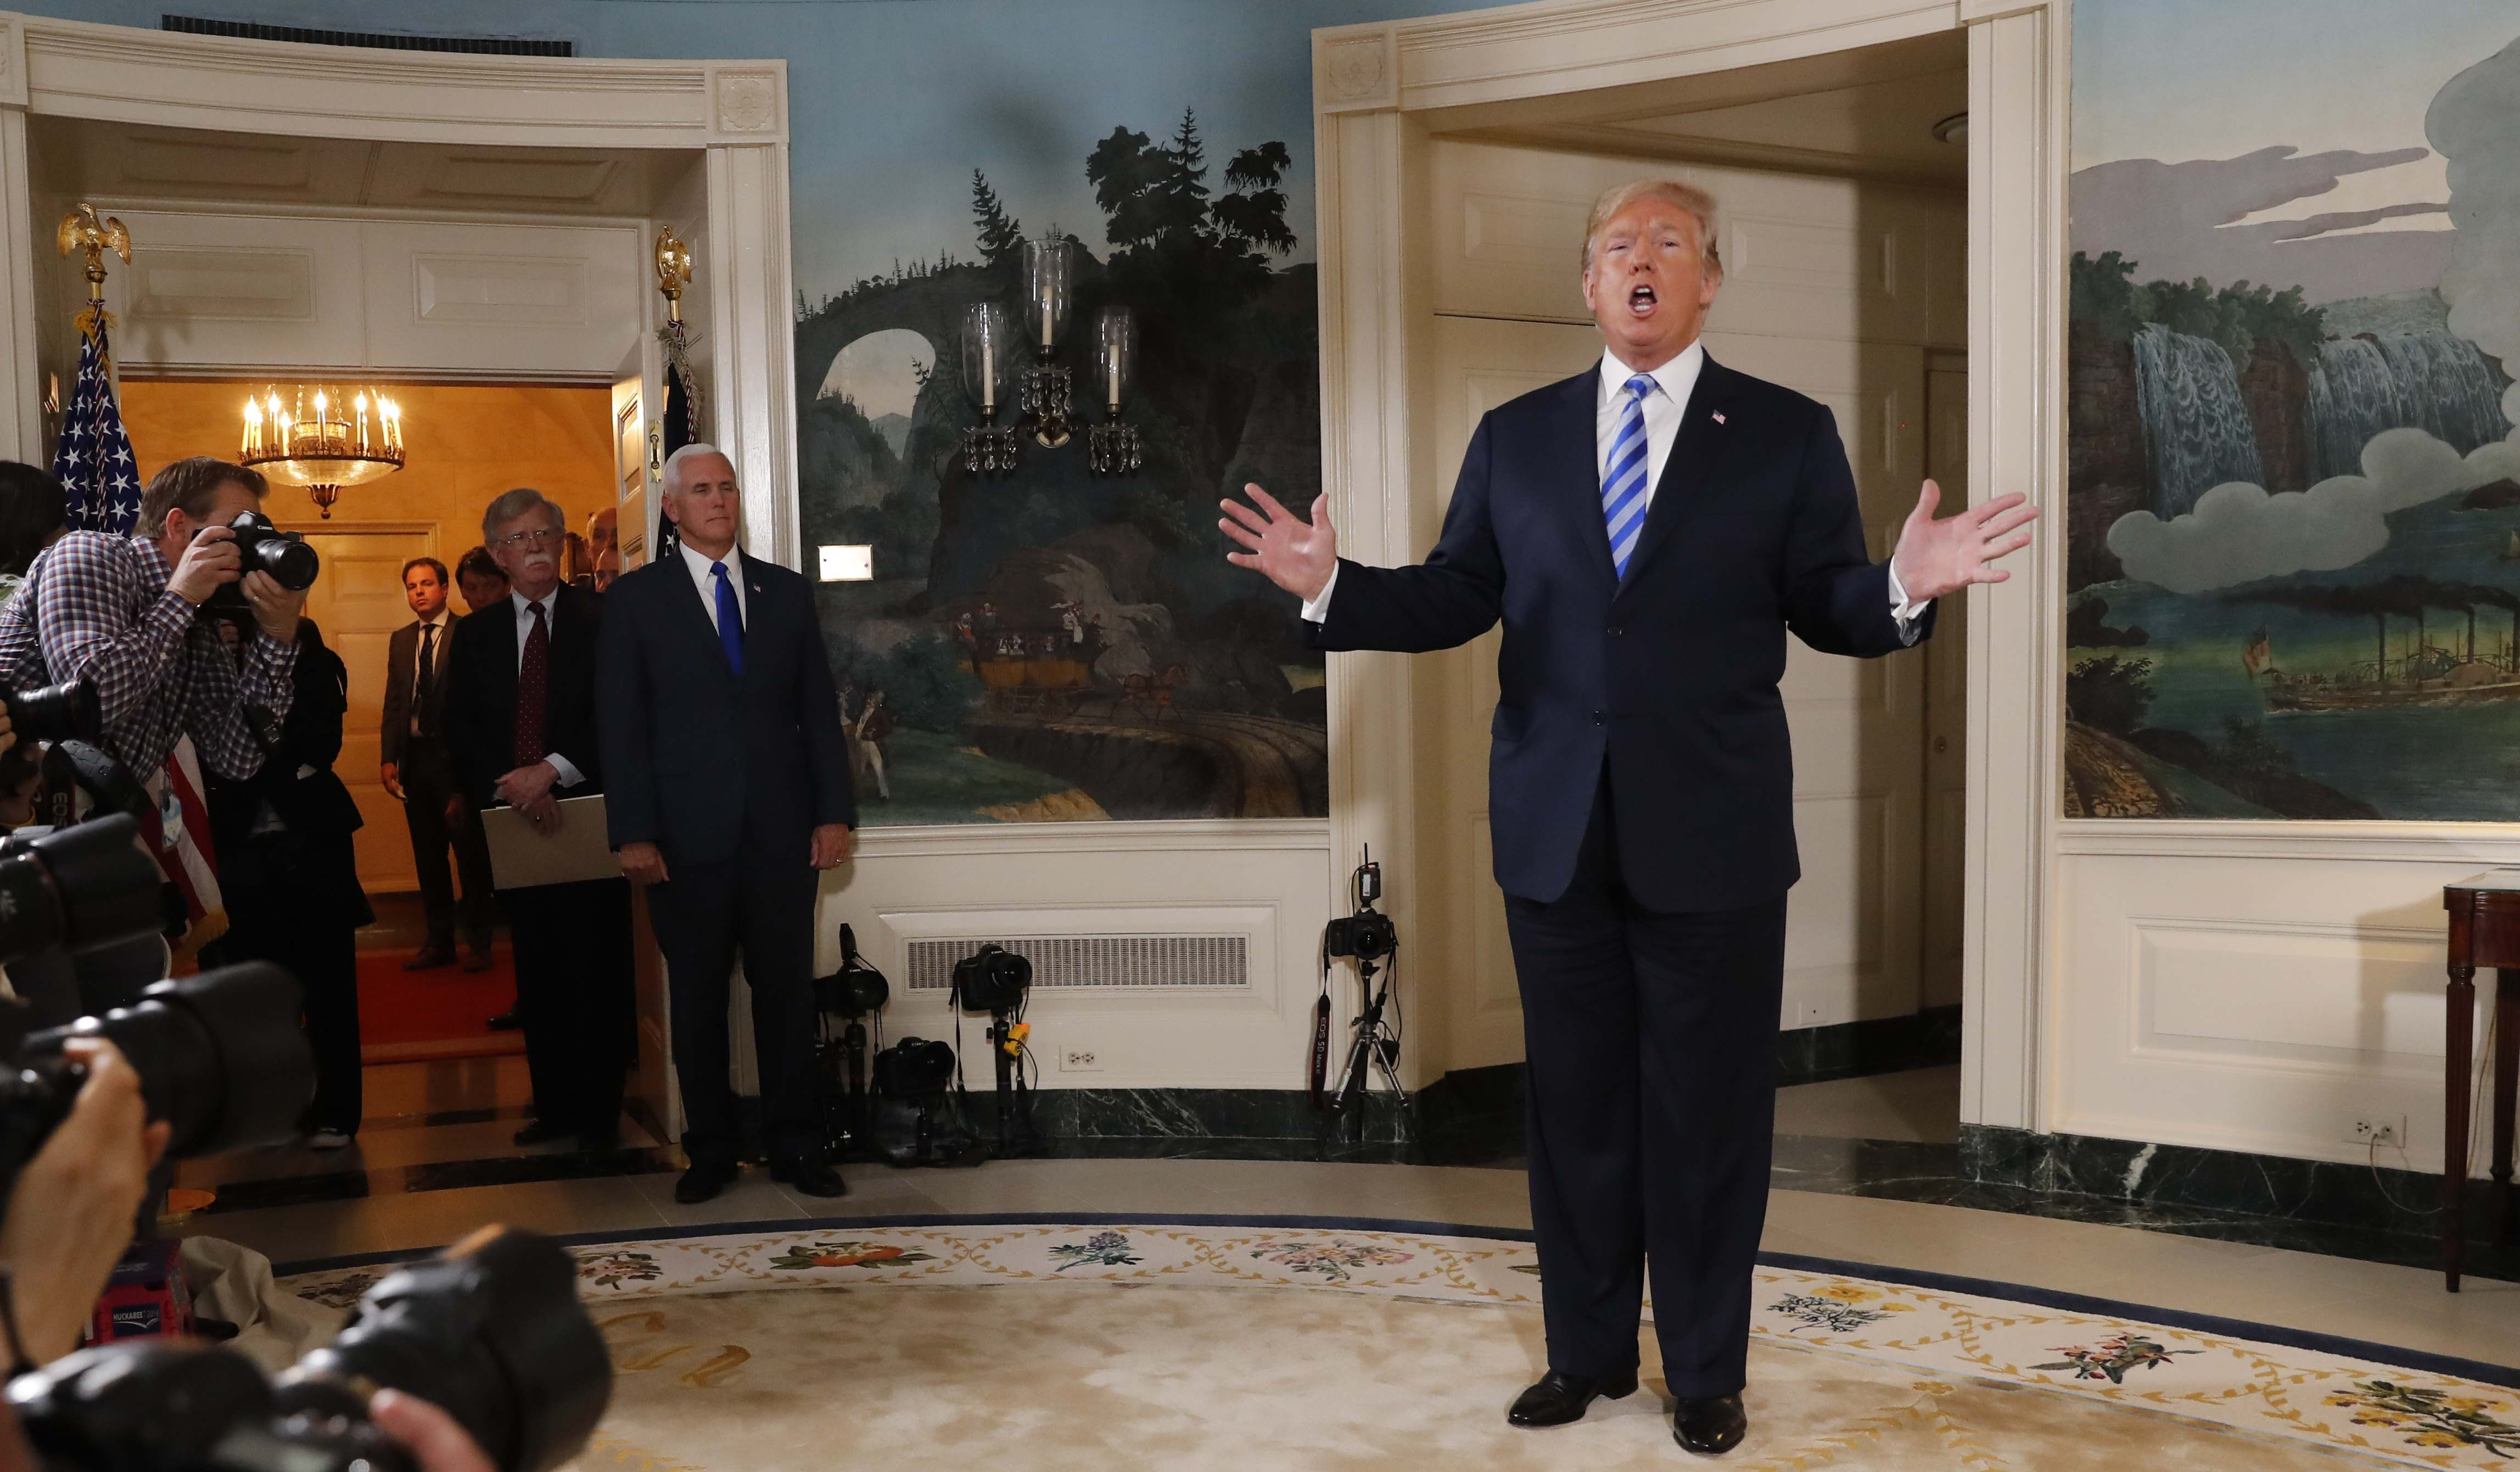 U.S. President Donald Trump reacts to a question from the media as National Security Advisor John Bolton and Vice President Mike Pence look on after the president announced his intention to withdraw from the JCPOA Iran nuclear agreement during a statement in the Diplomatic Room at the White House in Washington, U.S., May 8, 2018. REUTERS/Jonathan Ernst